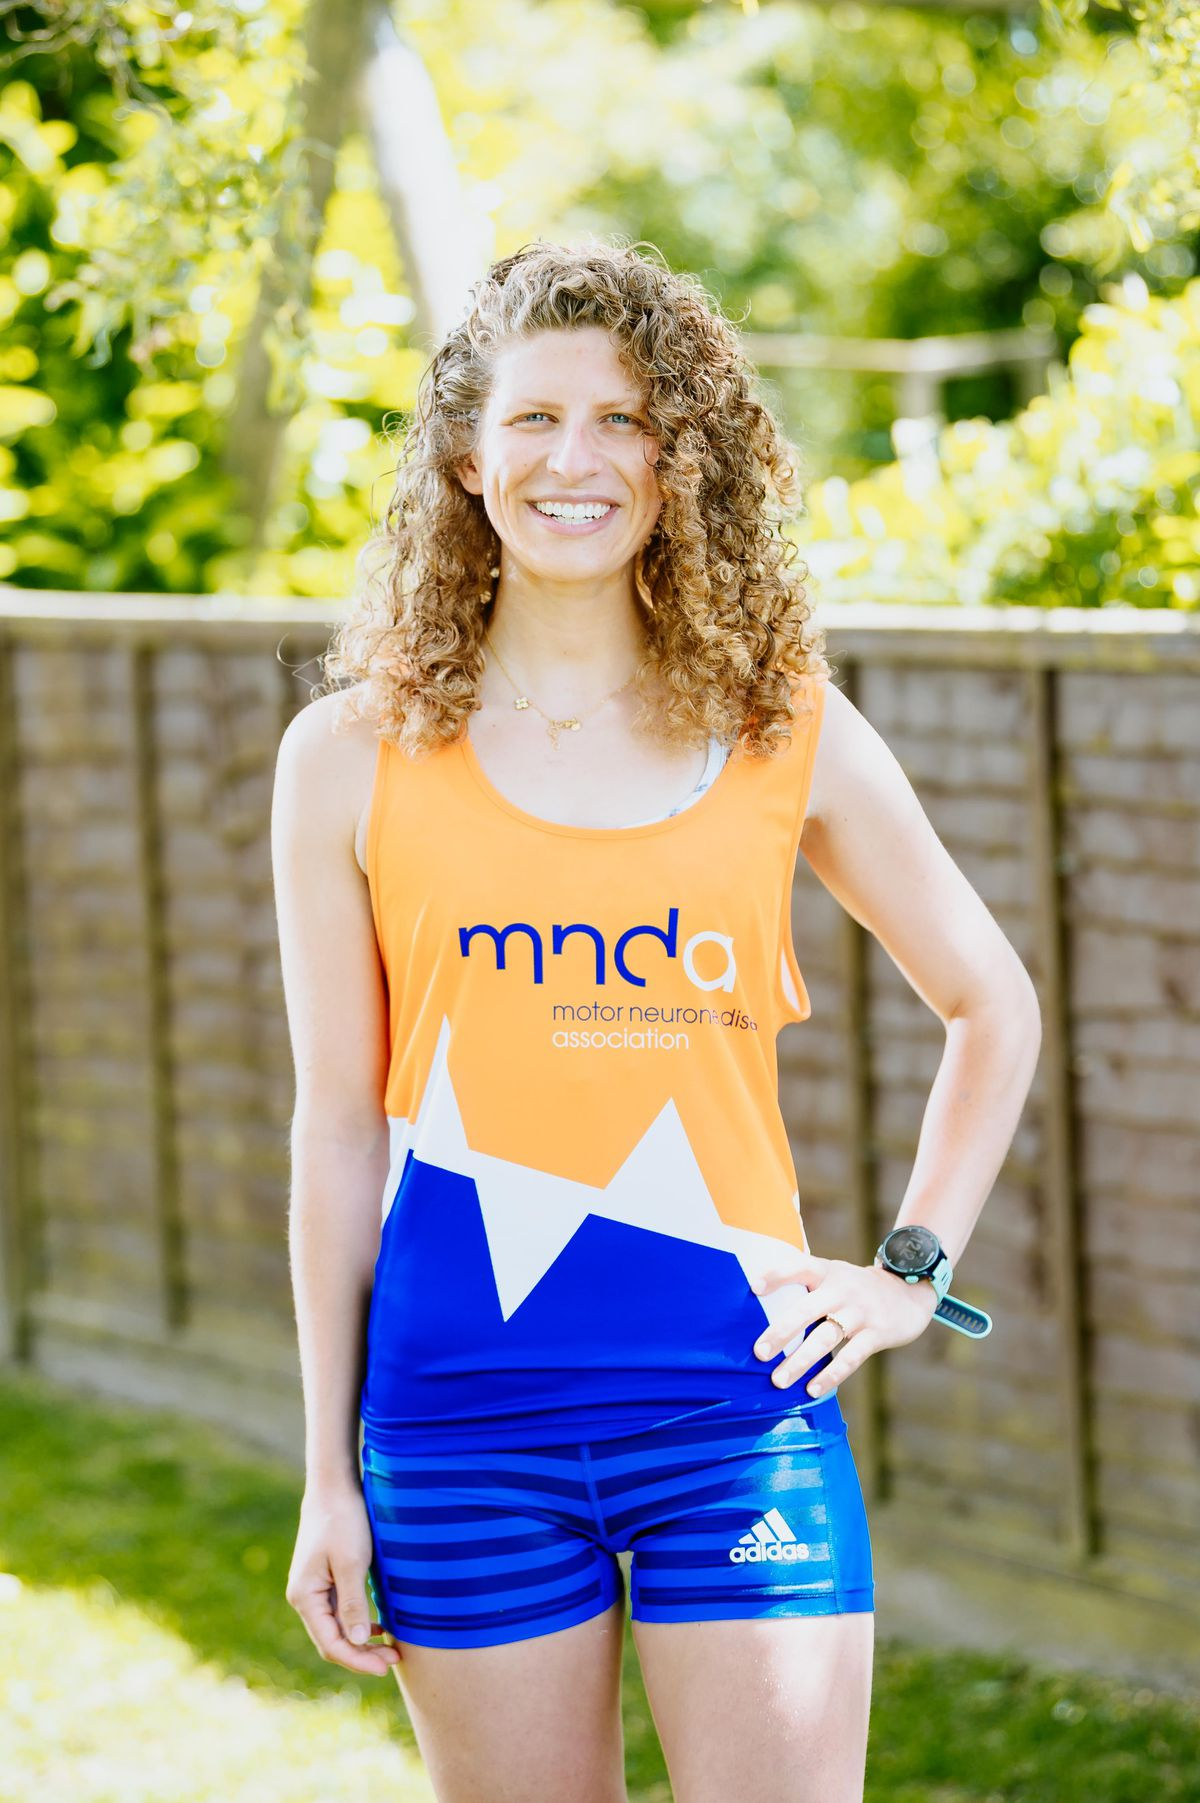 BORDER COPYRIGHT SHROPSHIRE STAR JAMIE RICKETTS 15/06/2021 - Bryony Webster from Baschurch is thrilled that the London Marathon can be run virtually. She has autism and could never manage the crowds and noise of the event. She is running around Shropshire for the Motor Neurone Disease charity..